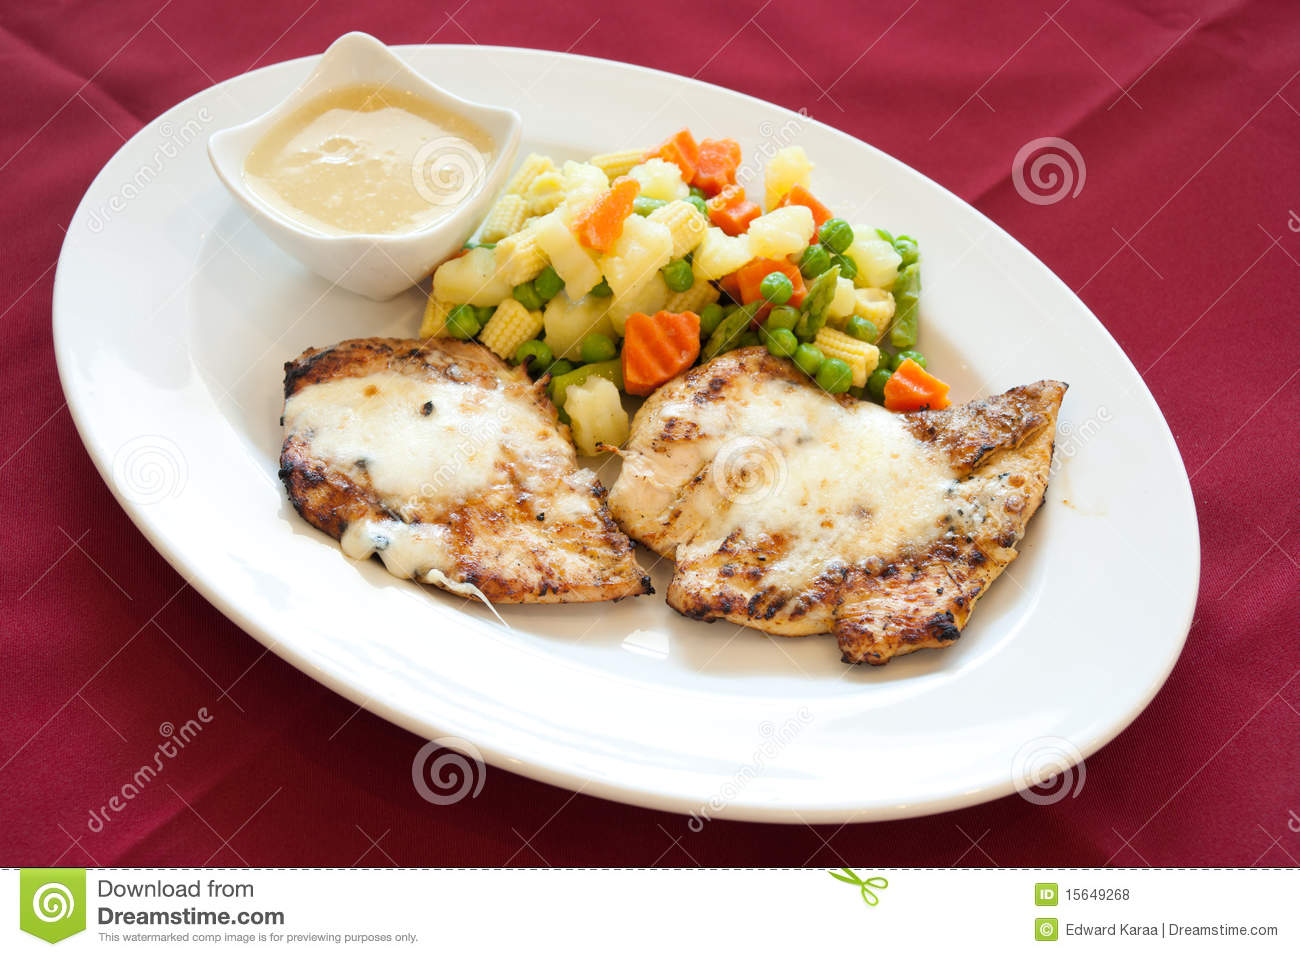 Grilled chicken filet lebanese food stock photo image for Arabic cuisine food